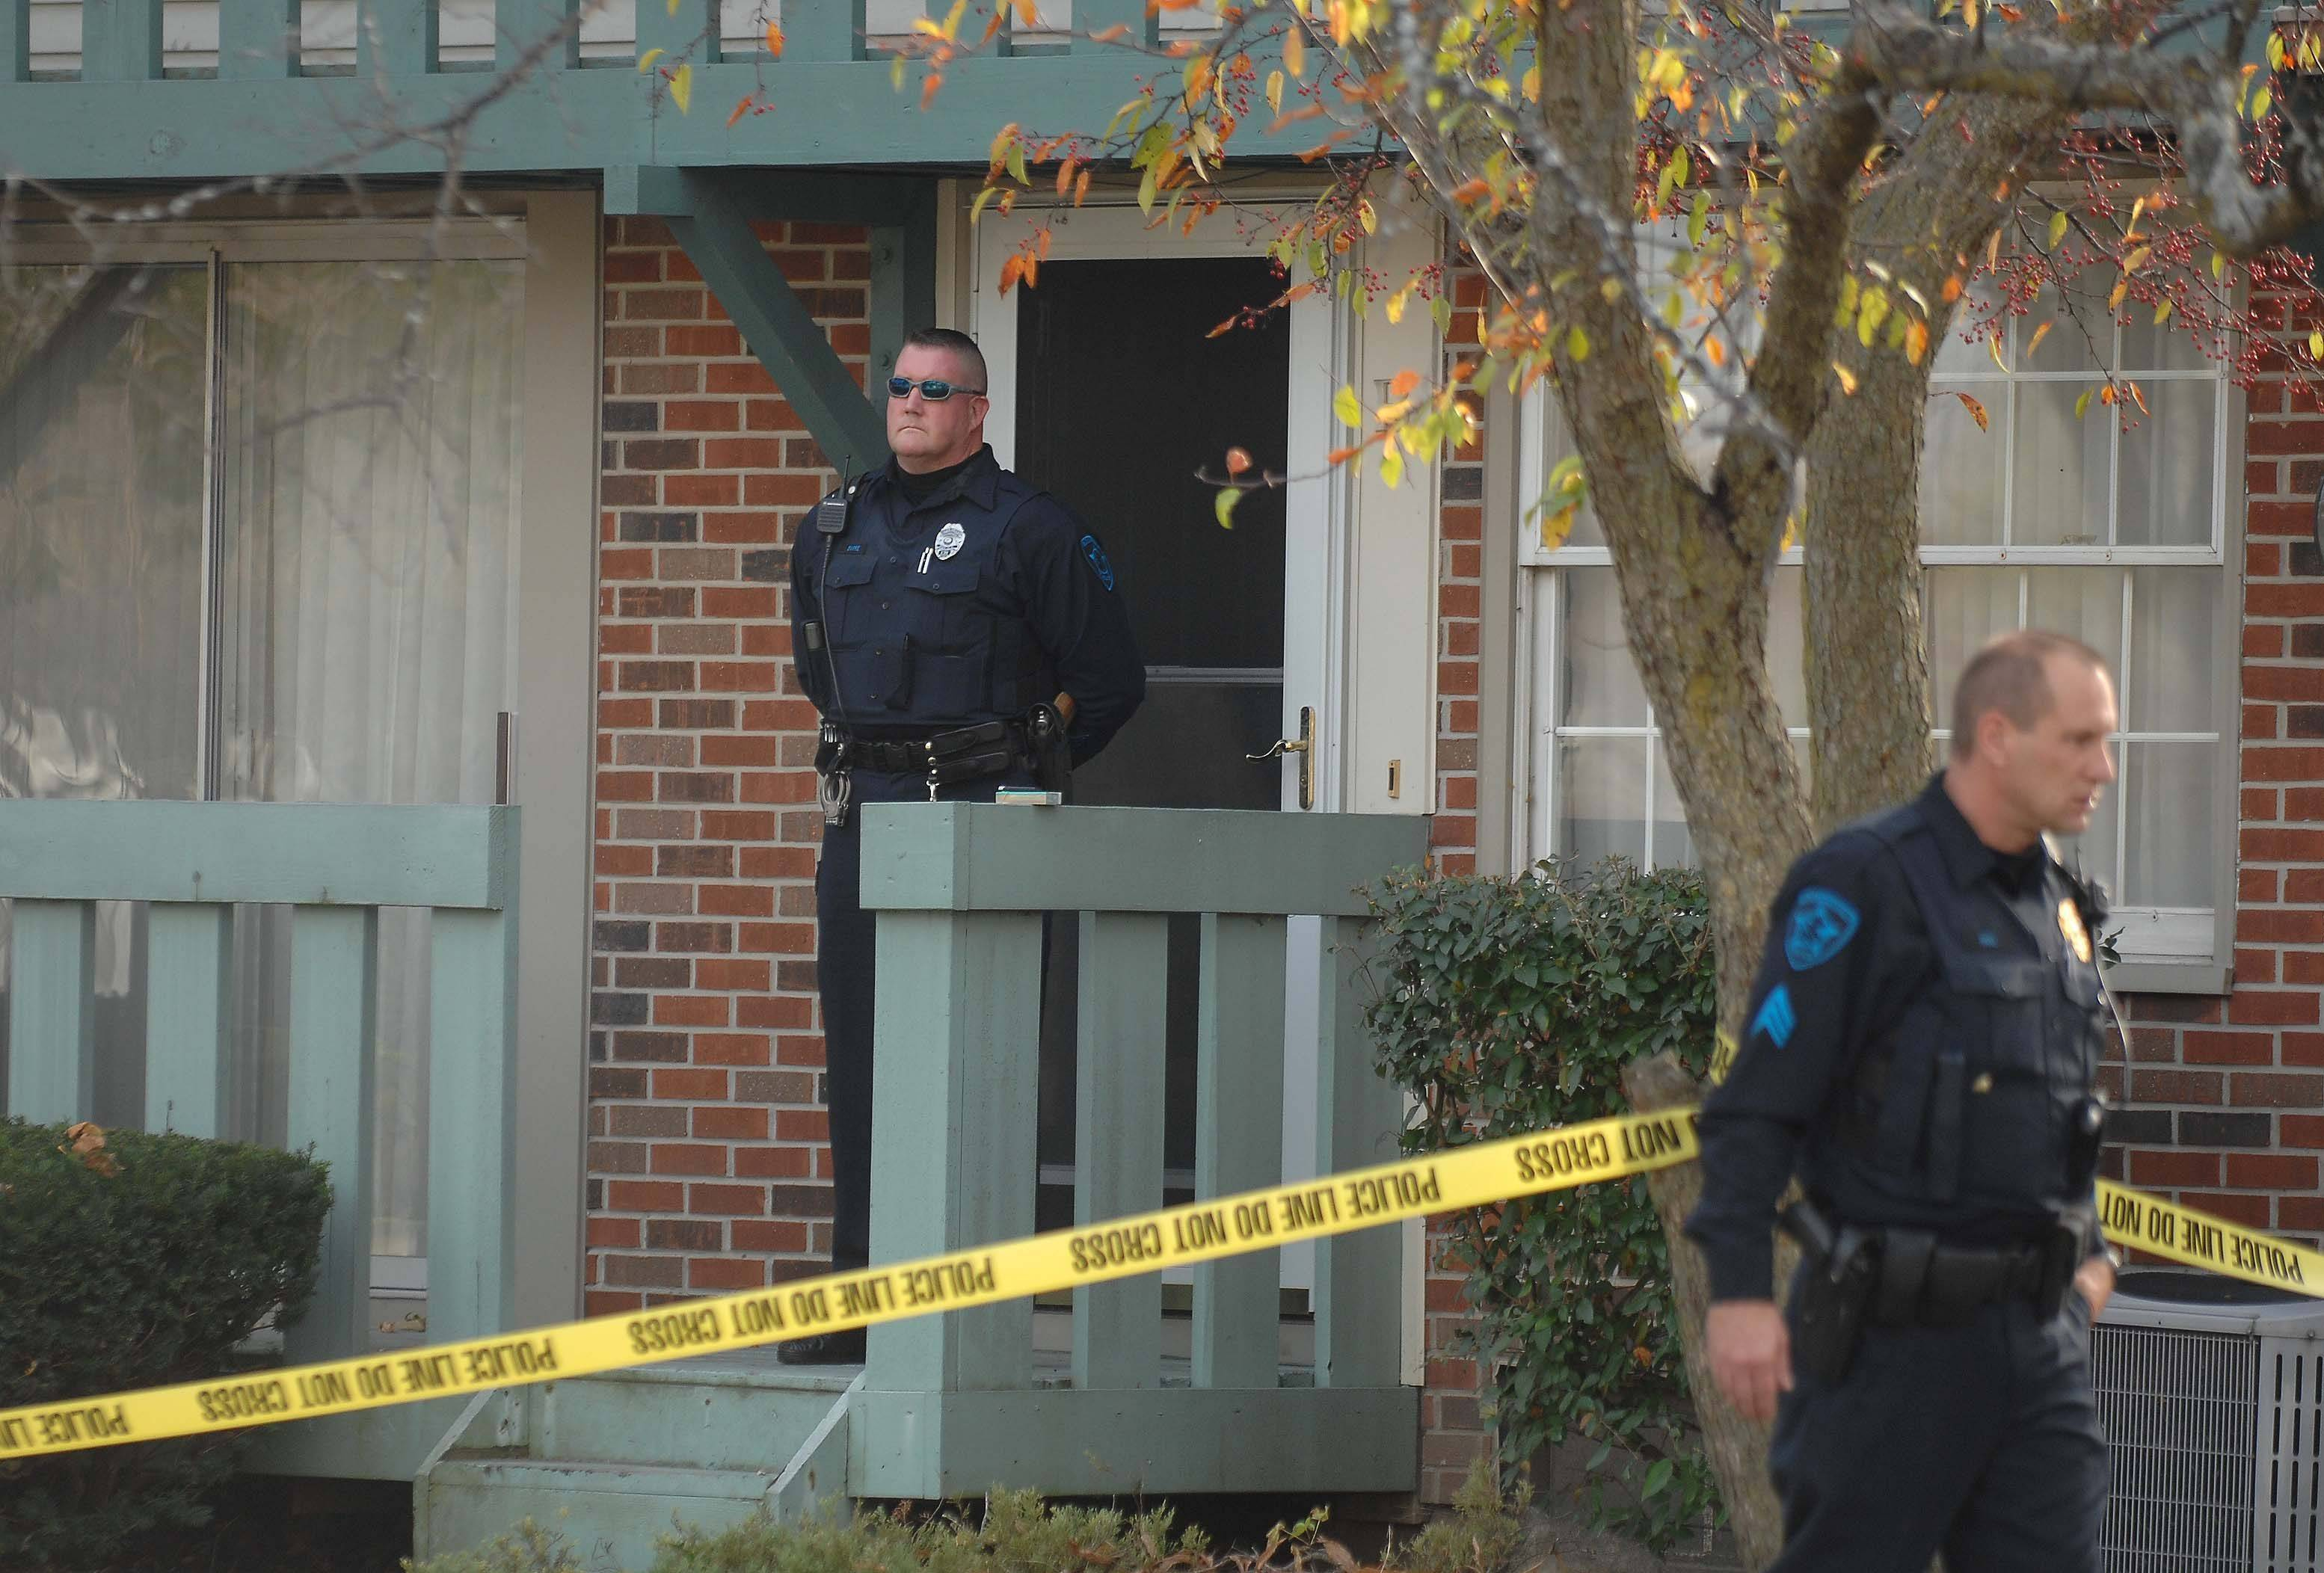 4-year-old found dead in Bloomingdale townhouse